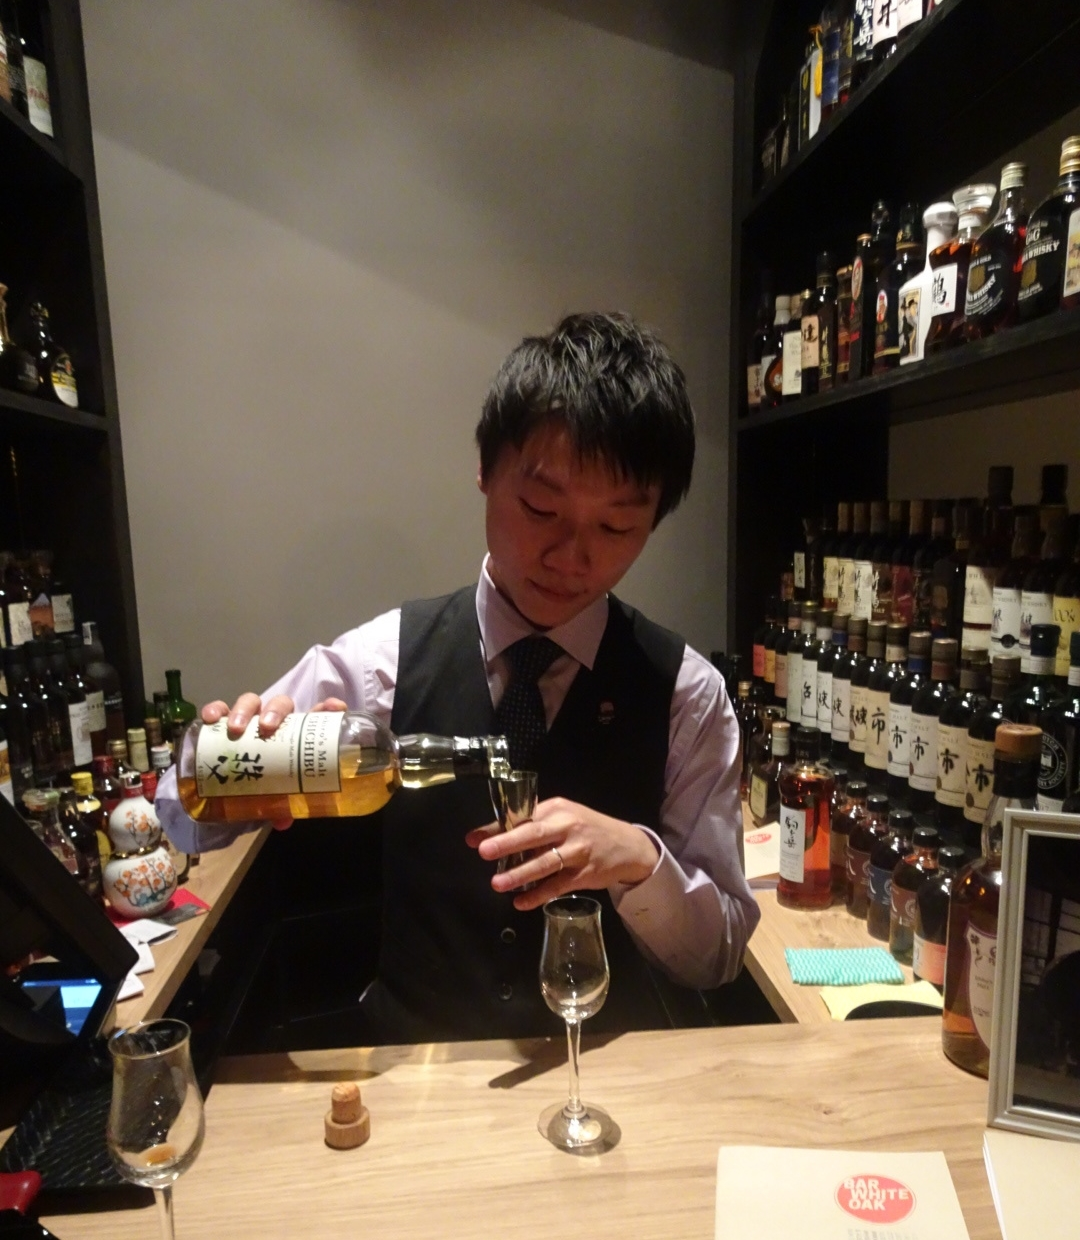 """Pop up curator Kelvin Low pouring a dram - you will find him in this spot most nights guiding punters through the whiskies """"on exhibit."""""""